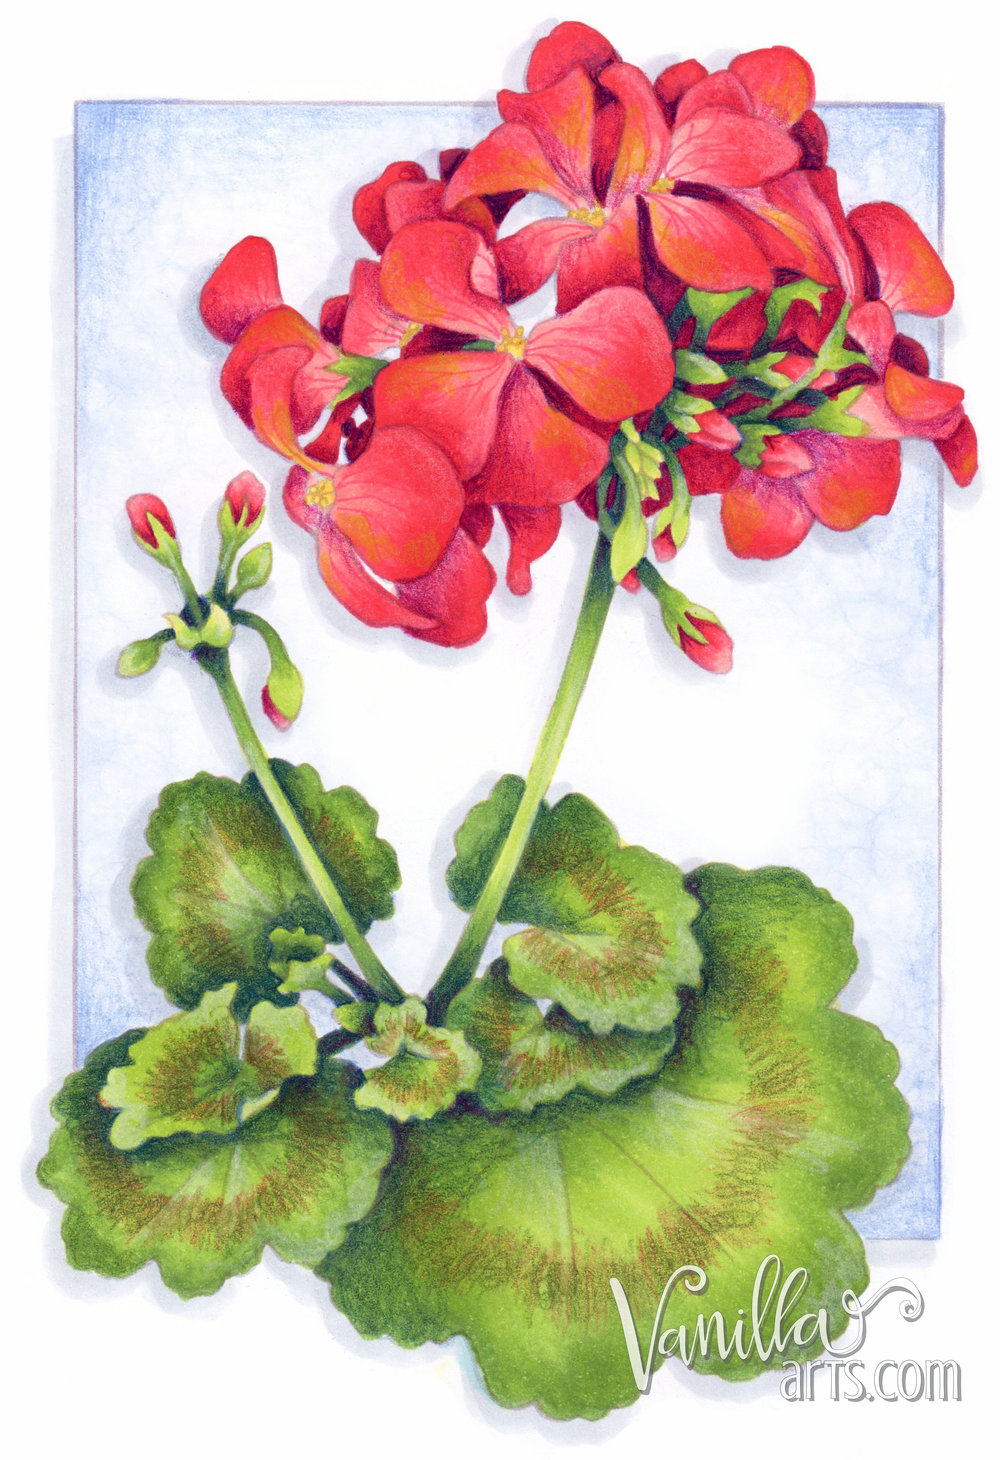 """Get your FREE copy of the """"Scarlet Geranium"""" digital stamp in July 2017. Vanilla Arts Co stamps are designed especially for use with Copic Markers, colored pencil, even watercolor. Join the Free Digi Club for a new stamp every month! 